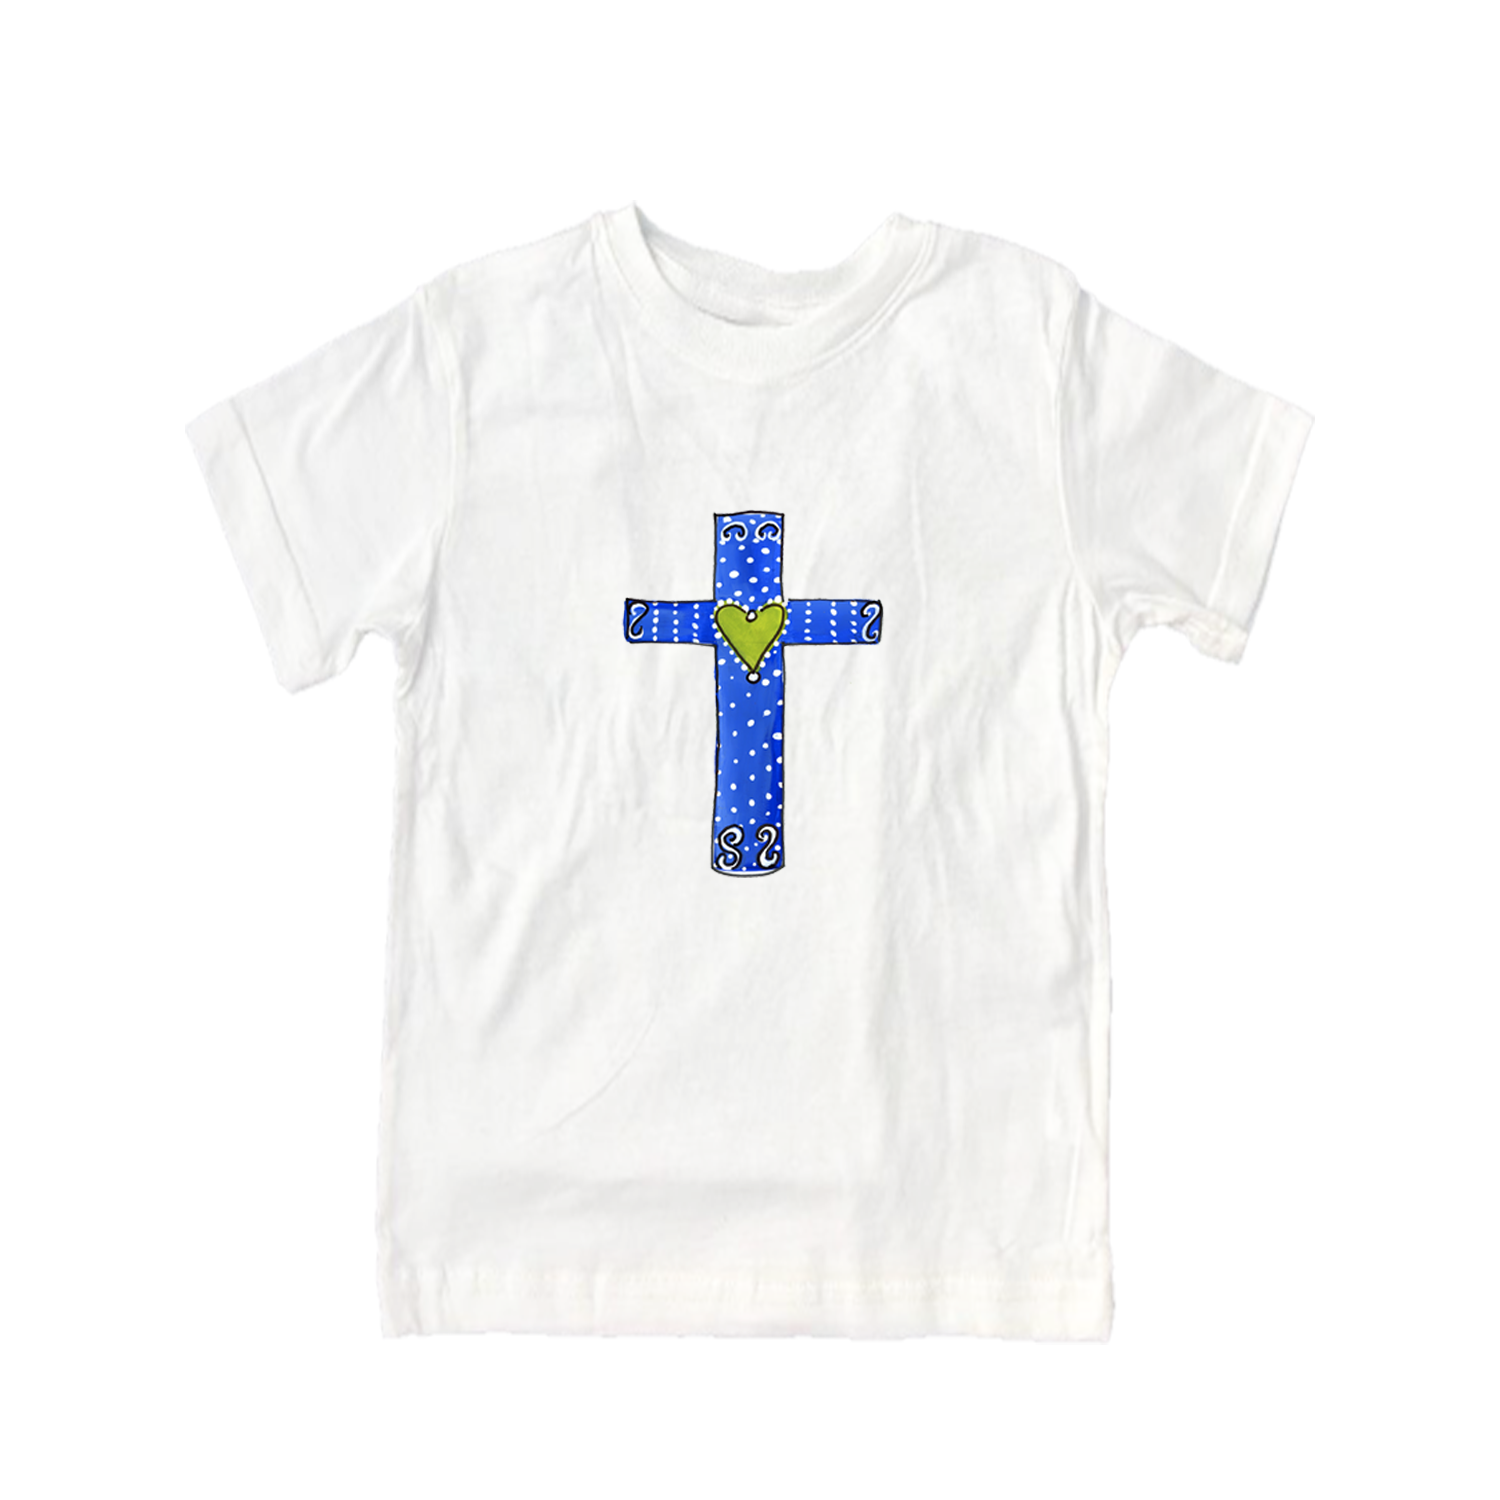 Girls Tee Shirt TS1053